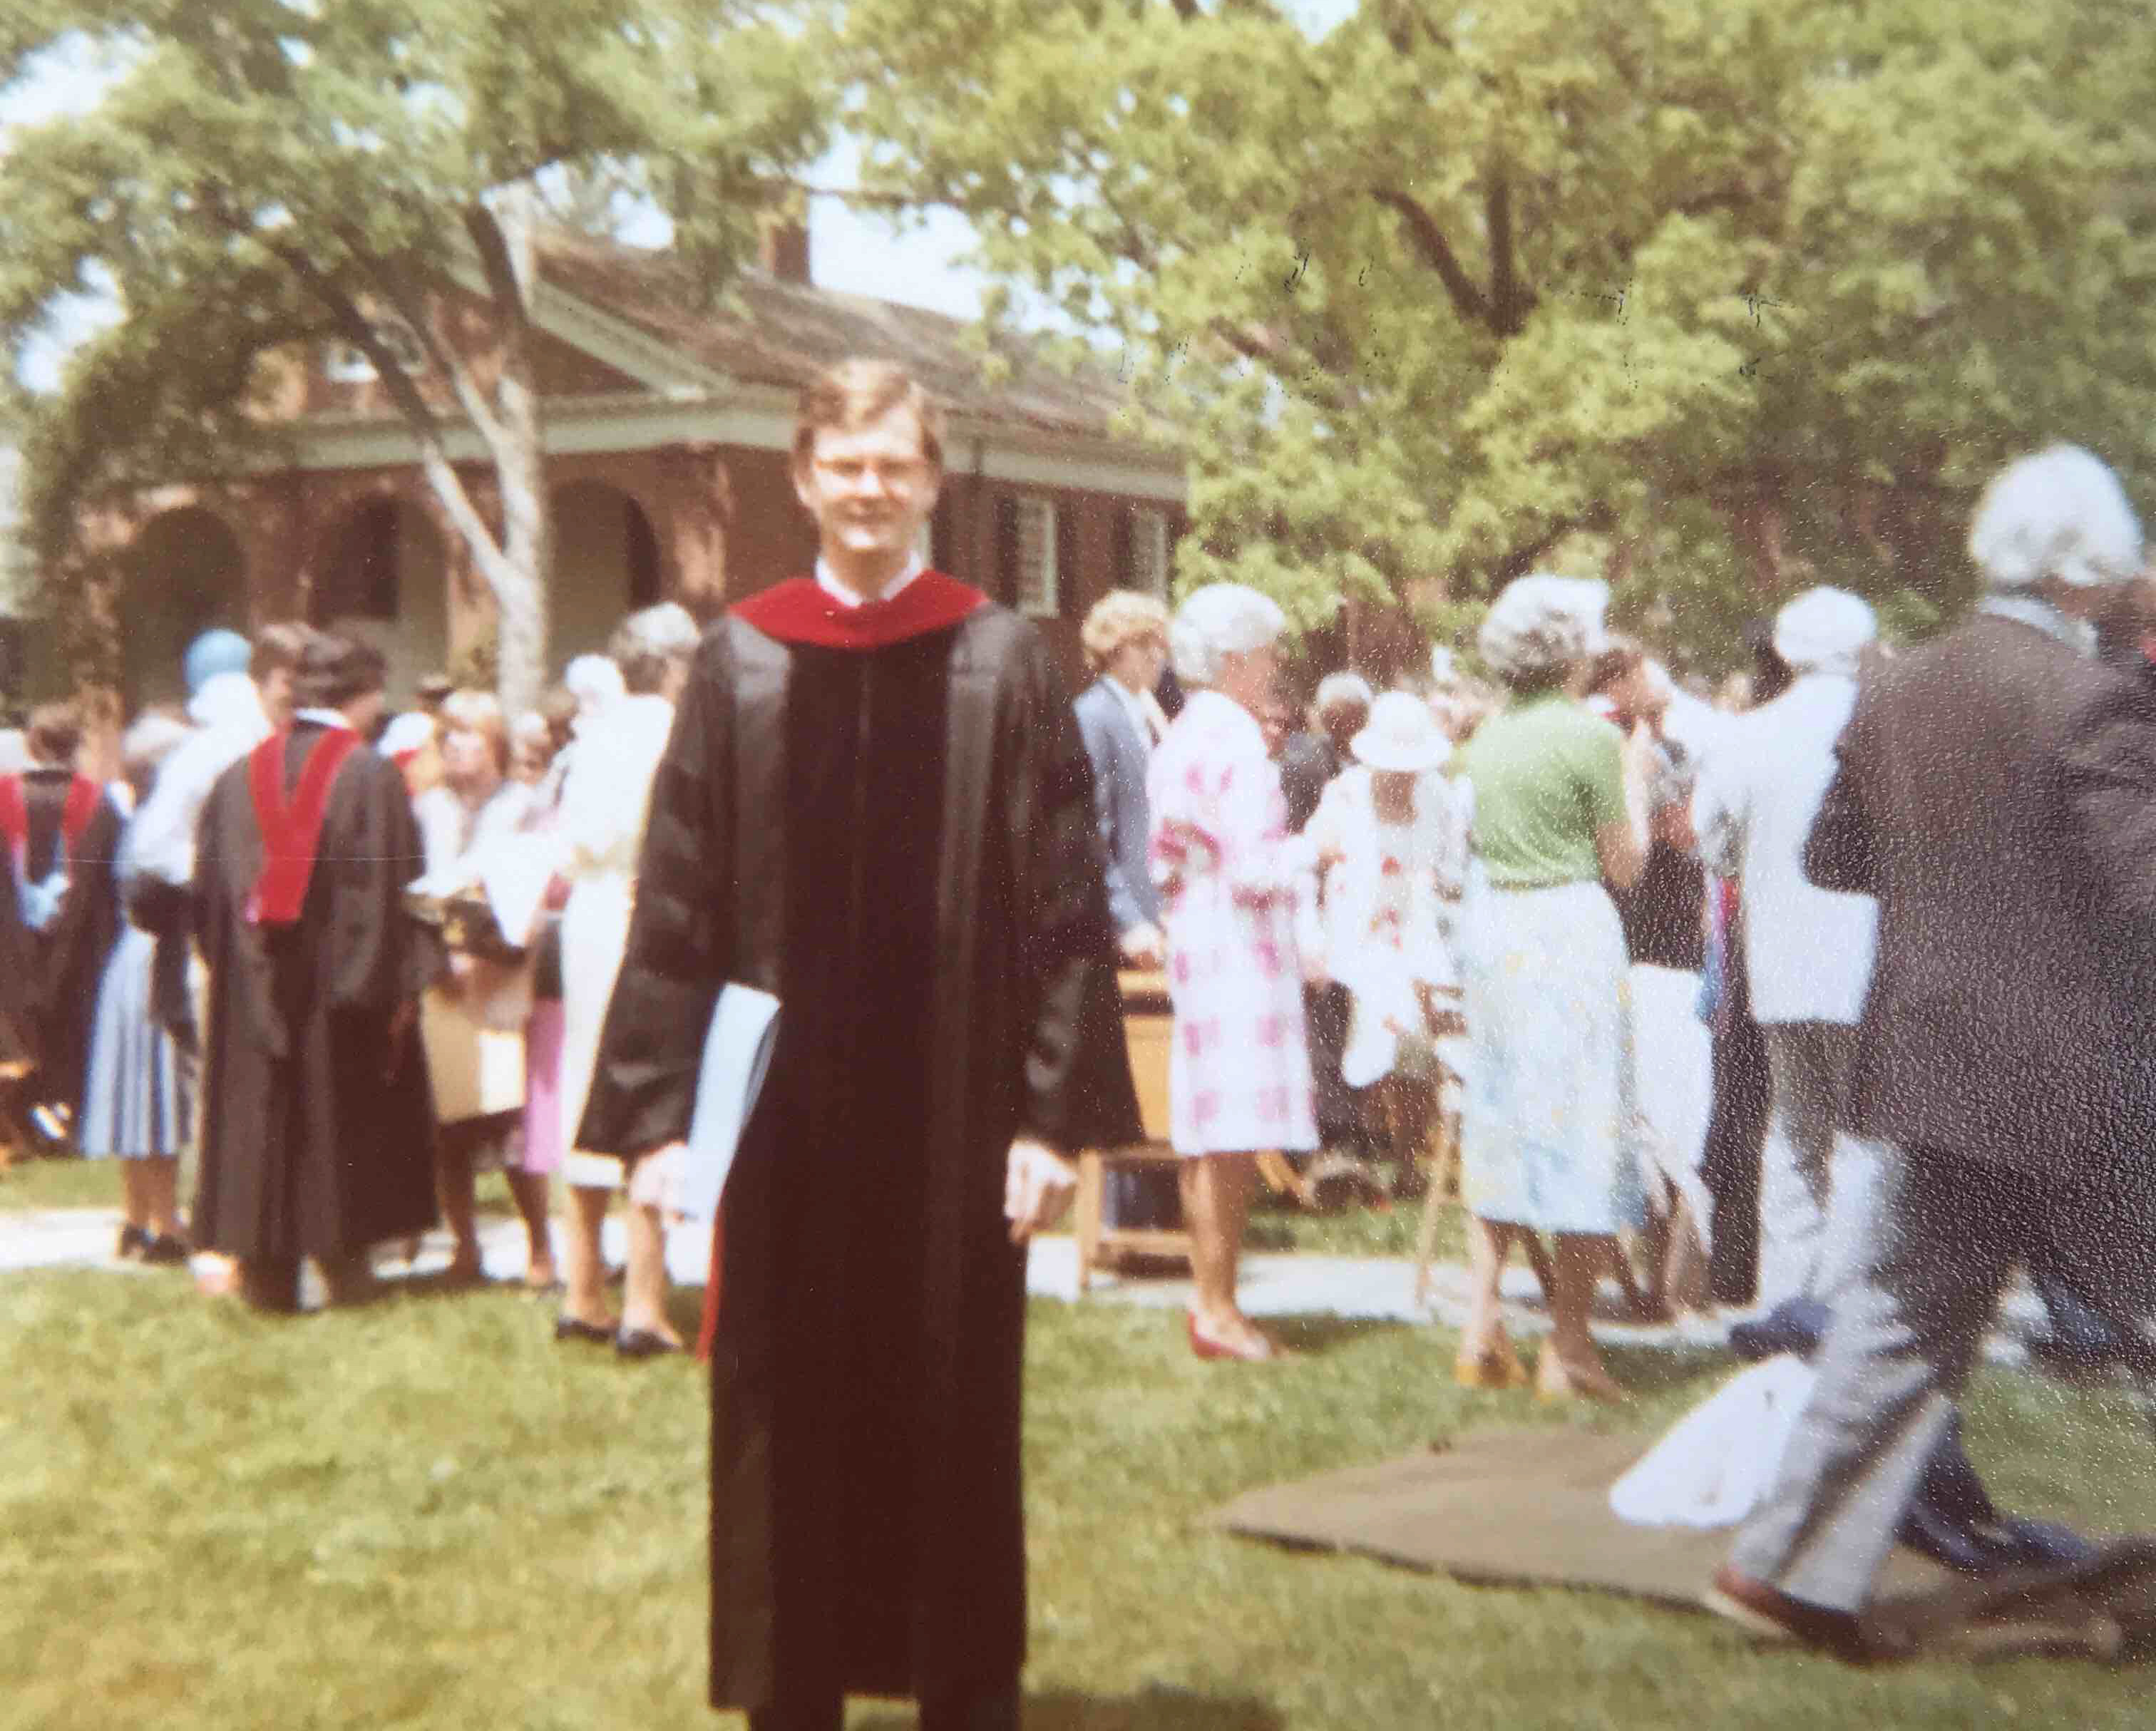 Succop at Commencement, without mortarboad.